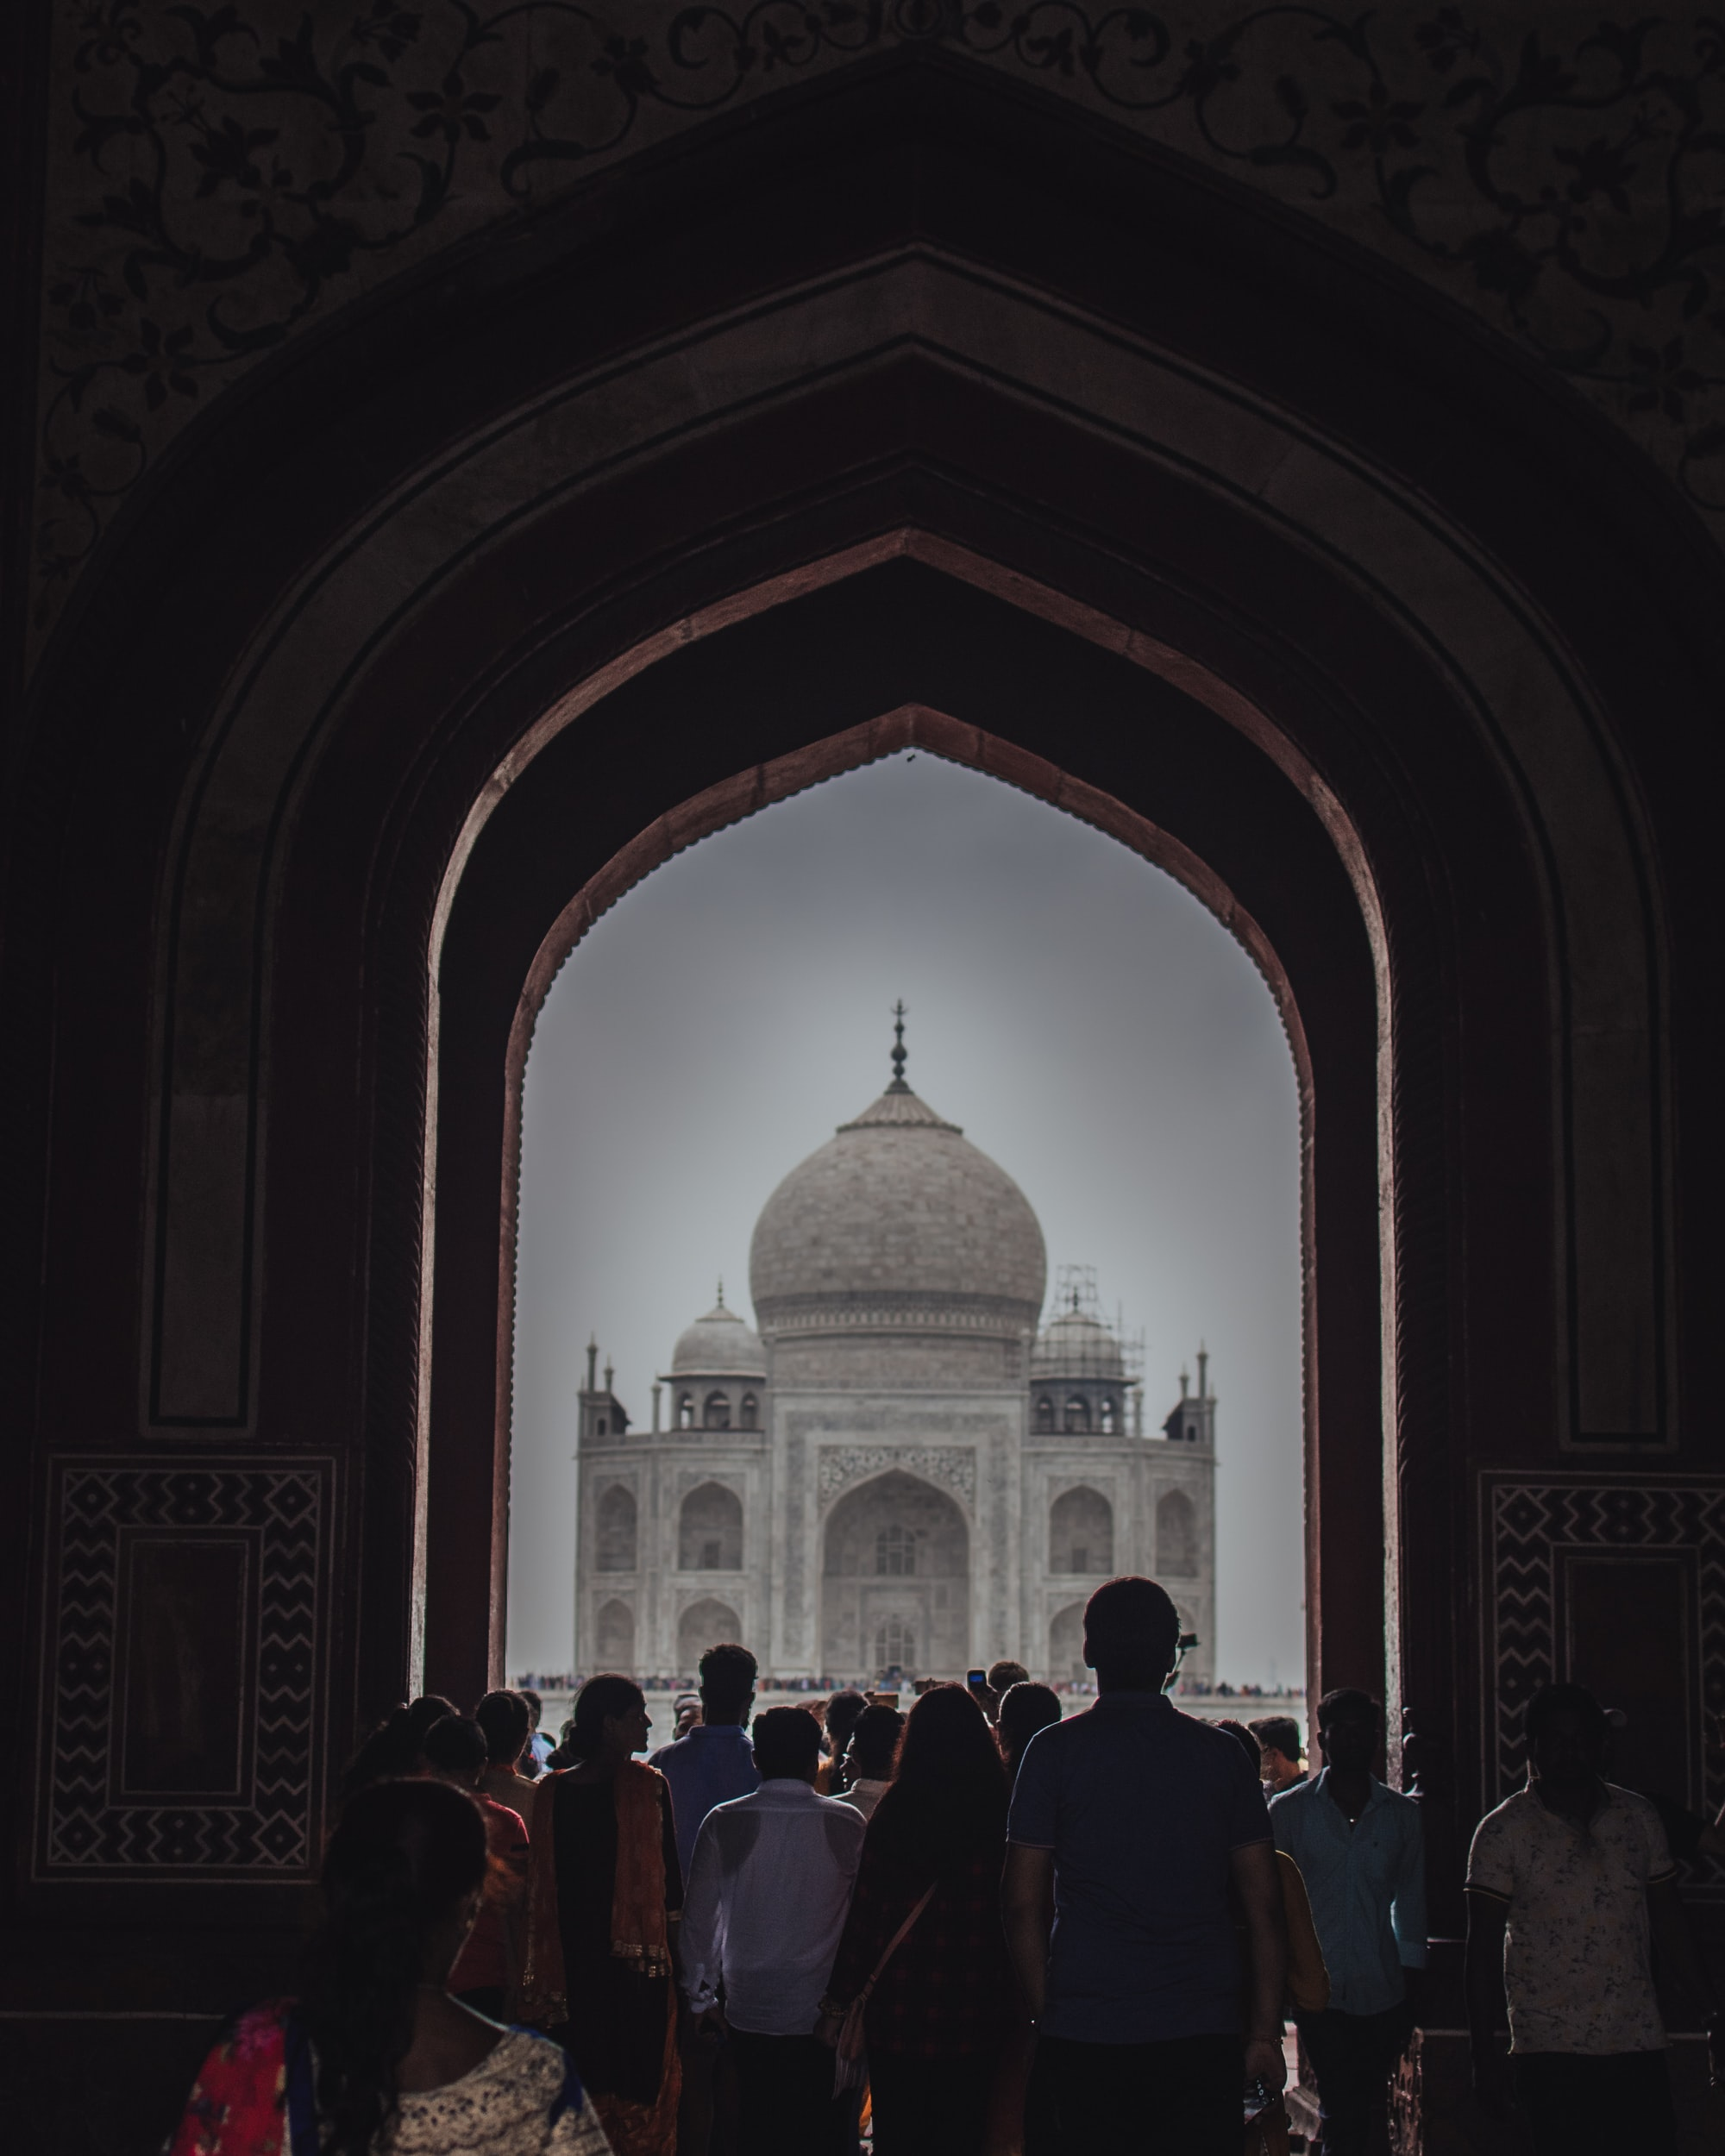 One of the eight wonders of the world,Taj Mahal in Agra, India is a symbol of love. Love of  a great Mughal emperor to his beloved queen. This monument ia often described by its incredible beauty and the thousands of love associated to it. Lives of all the workers, the lives and the afterlives of the queen and the emperor Shahjahan